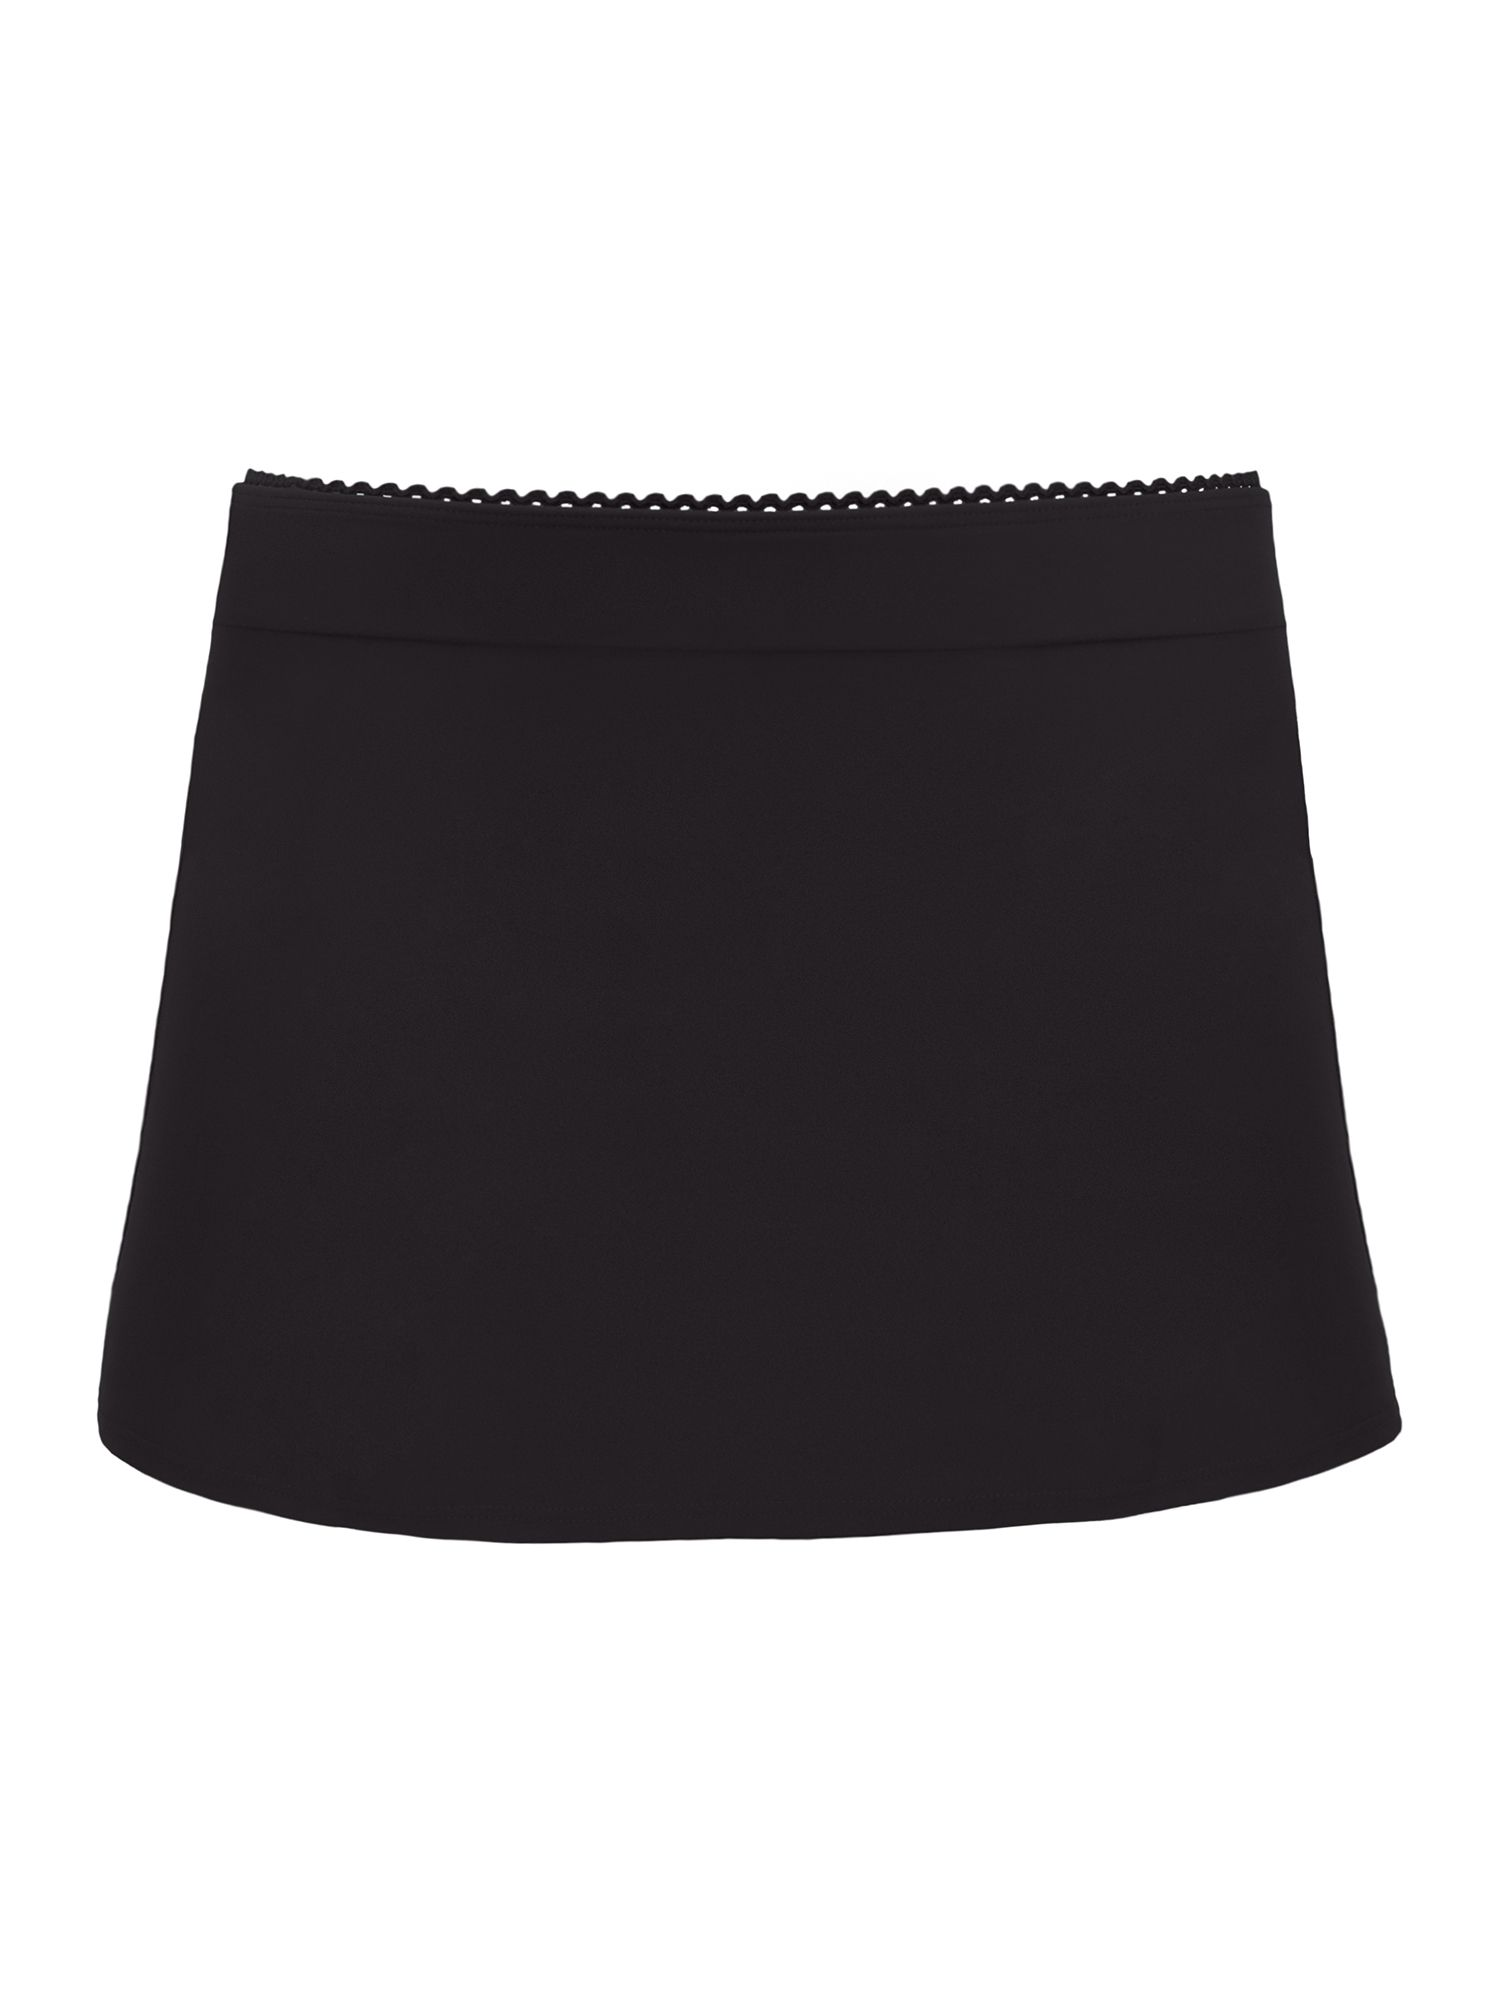 Curvy Kate Jetty swim skirt, Black